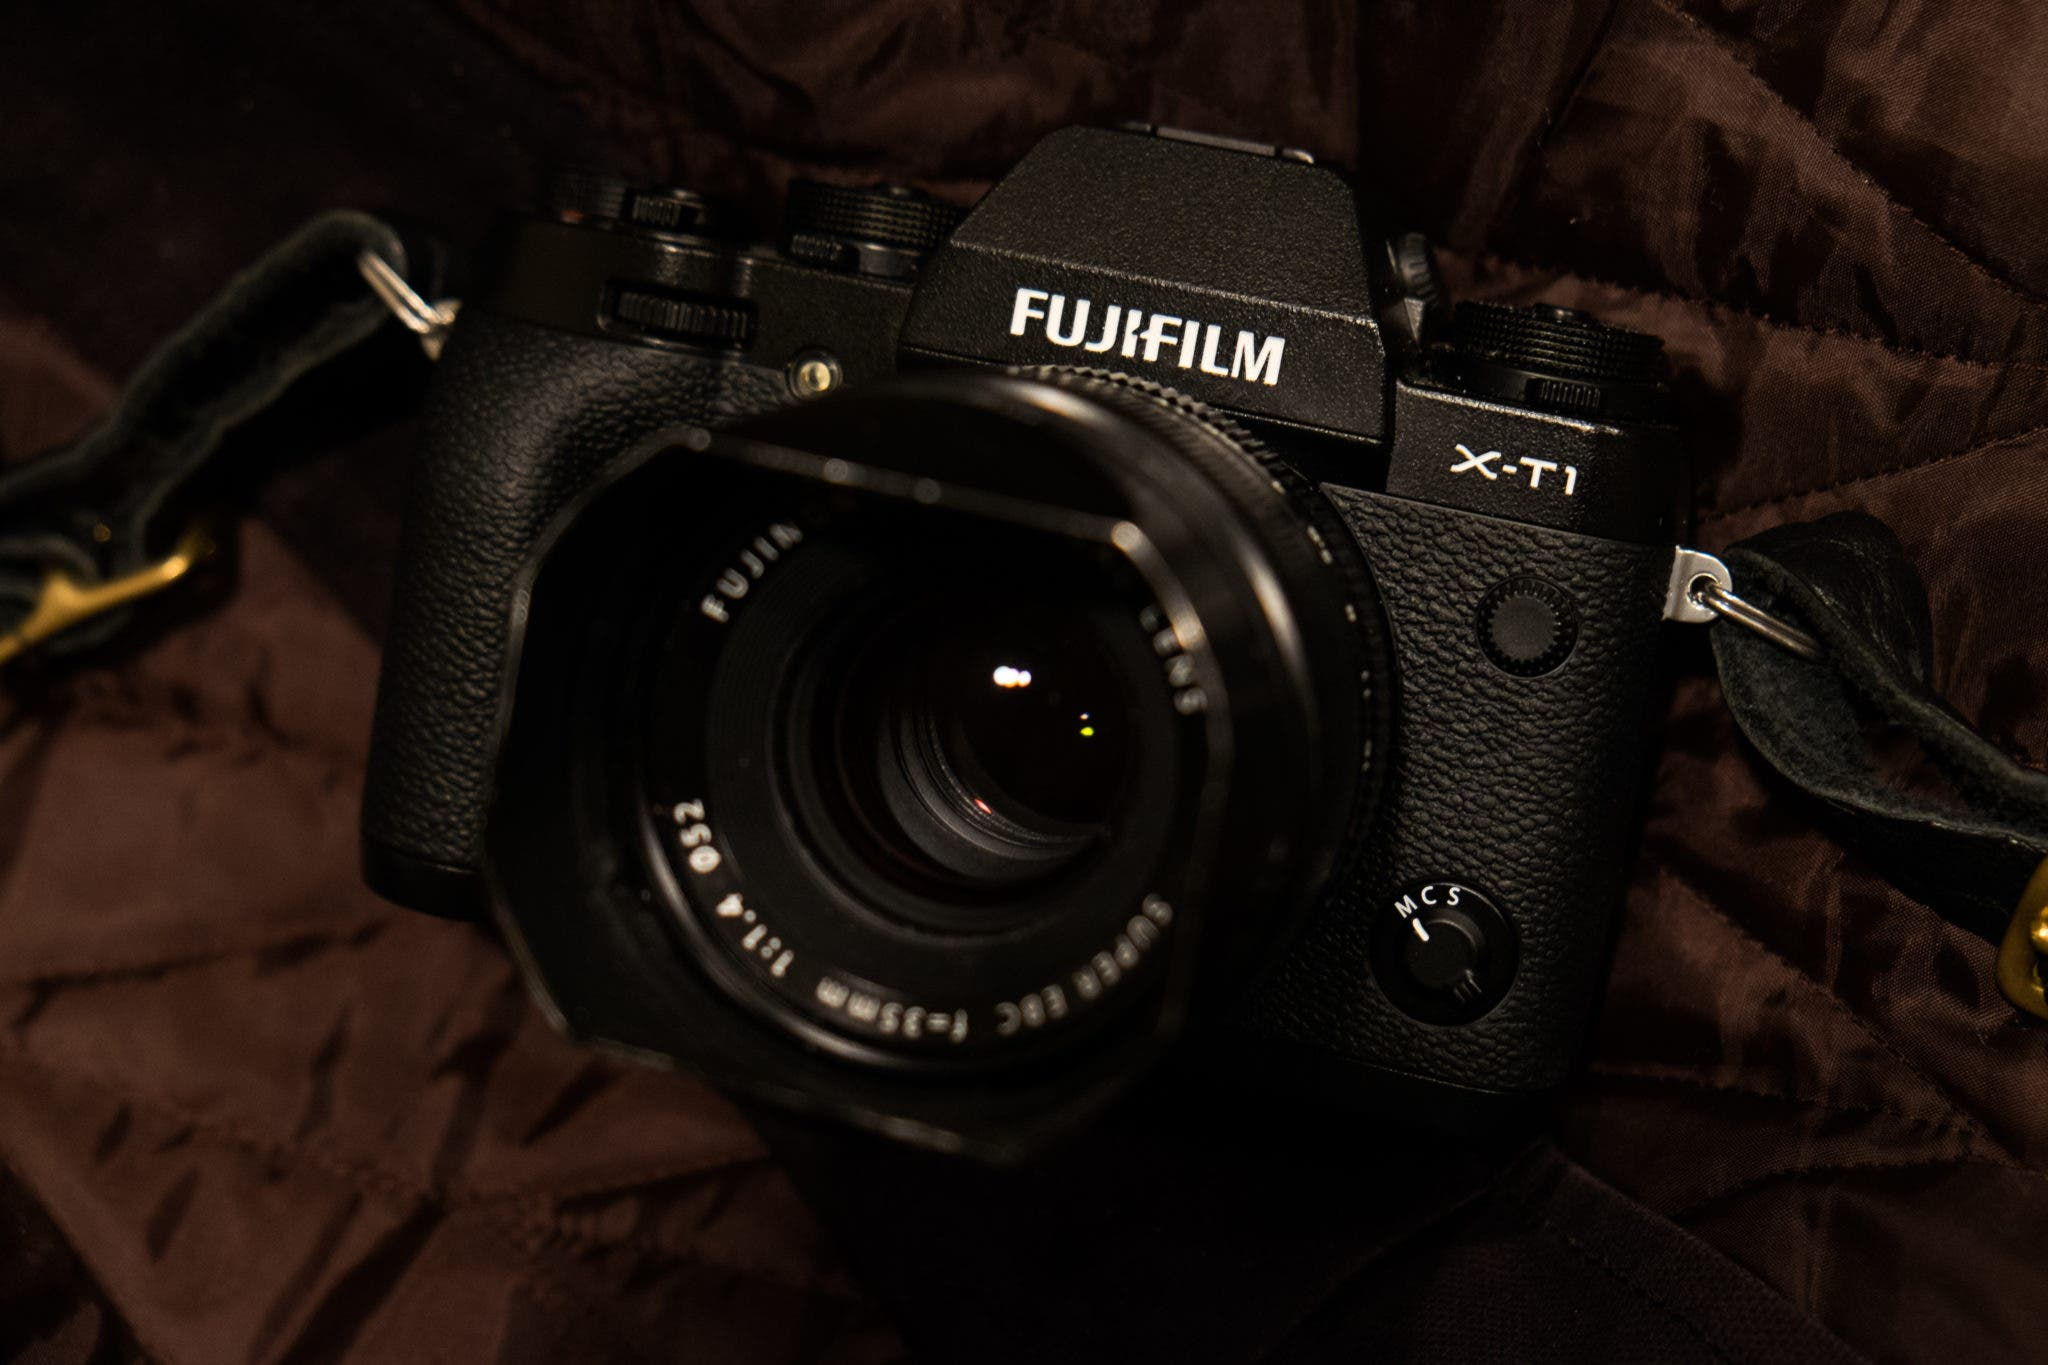 Fujifilm Reportedly Working on a Super-Fast 16mm f1.4 Wide-Angle X-Mount Lens